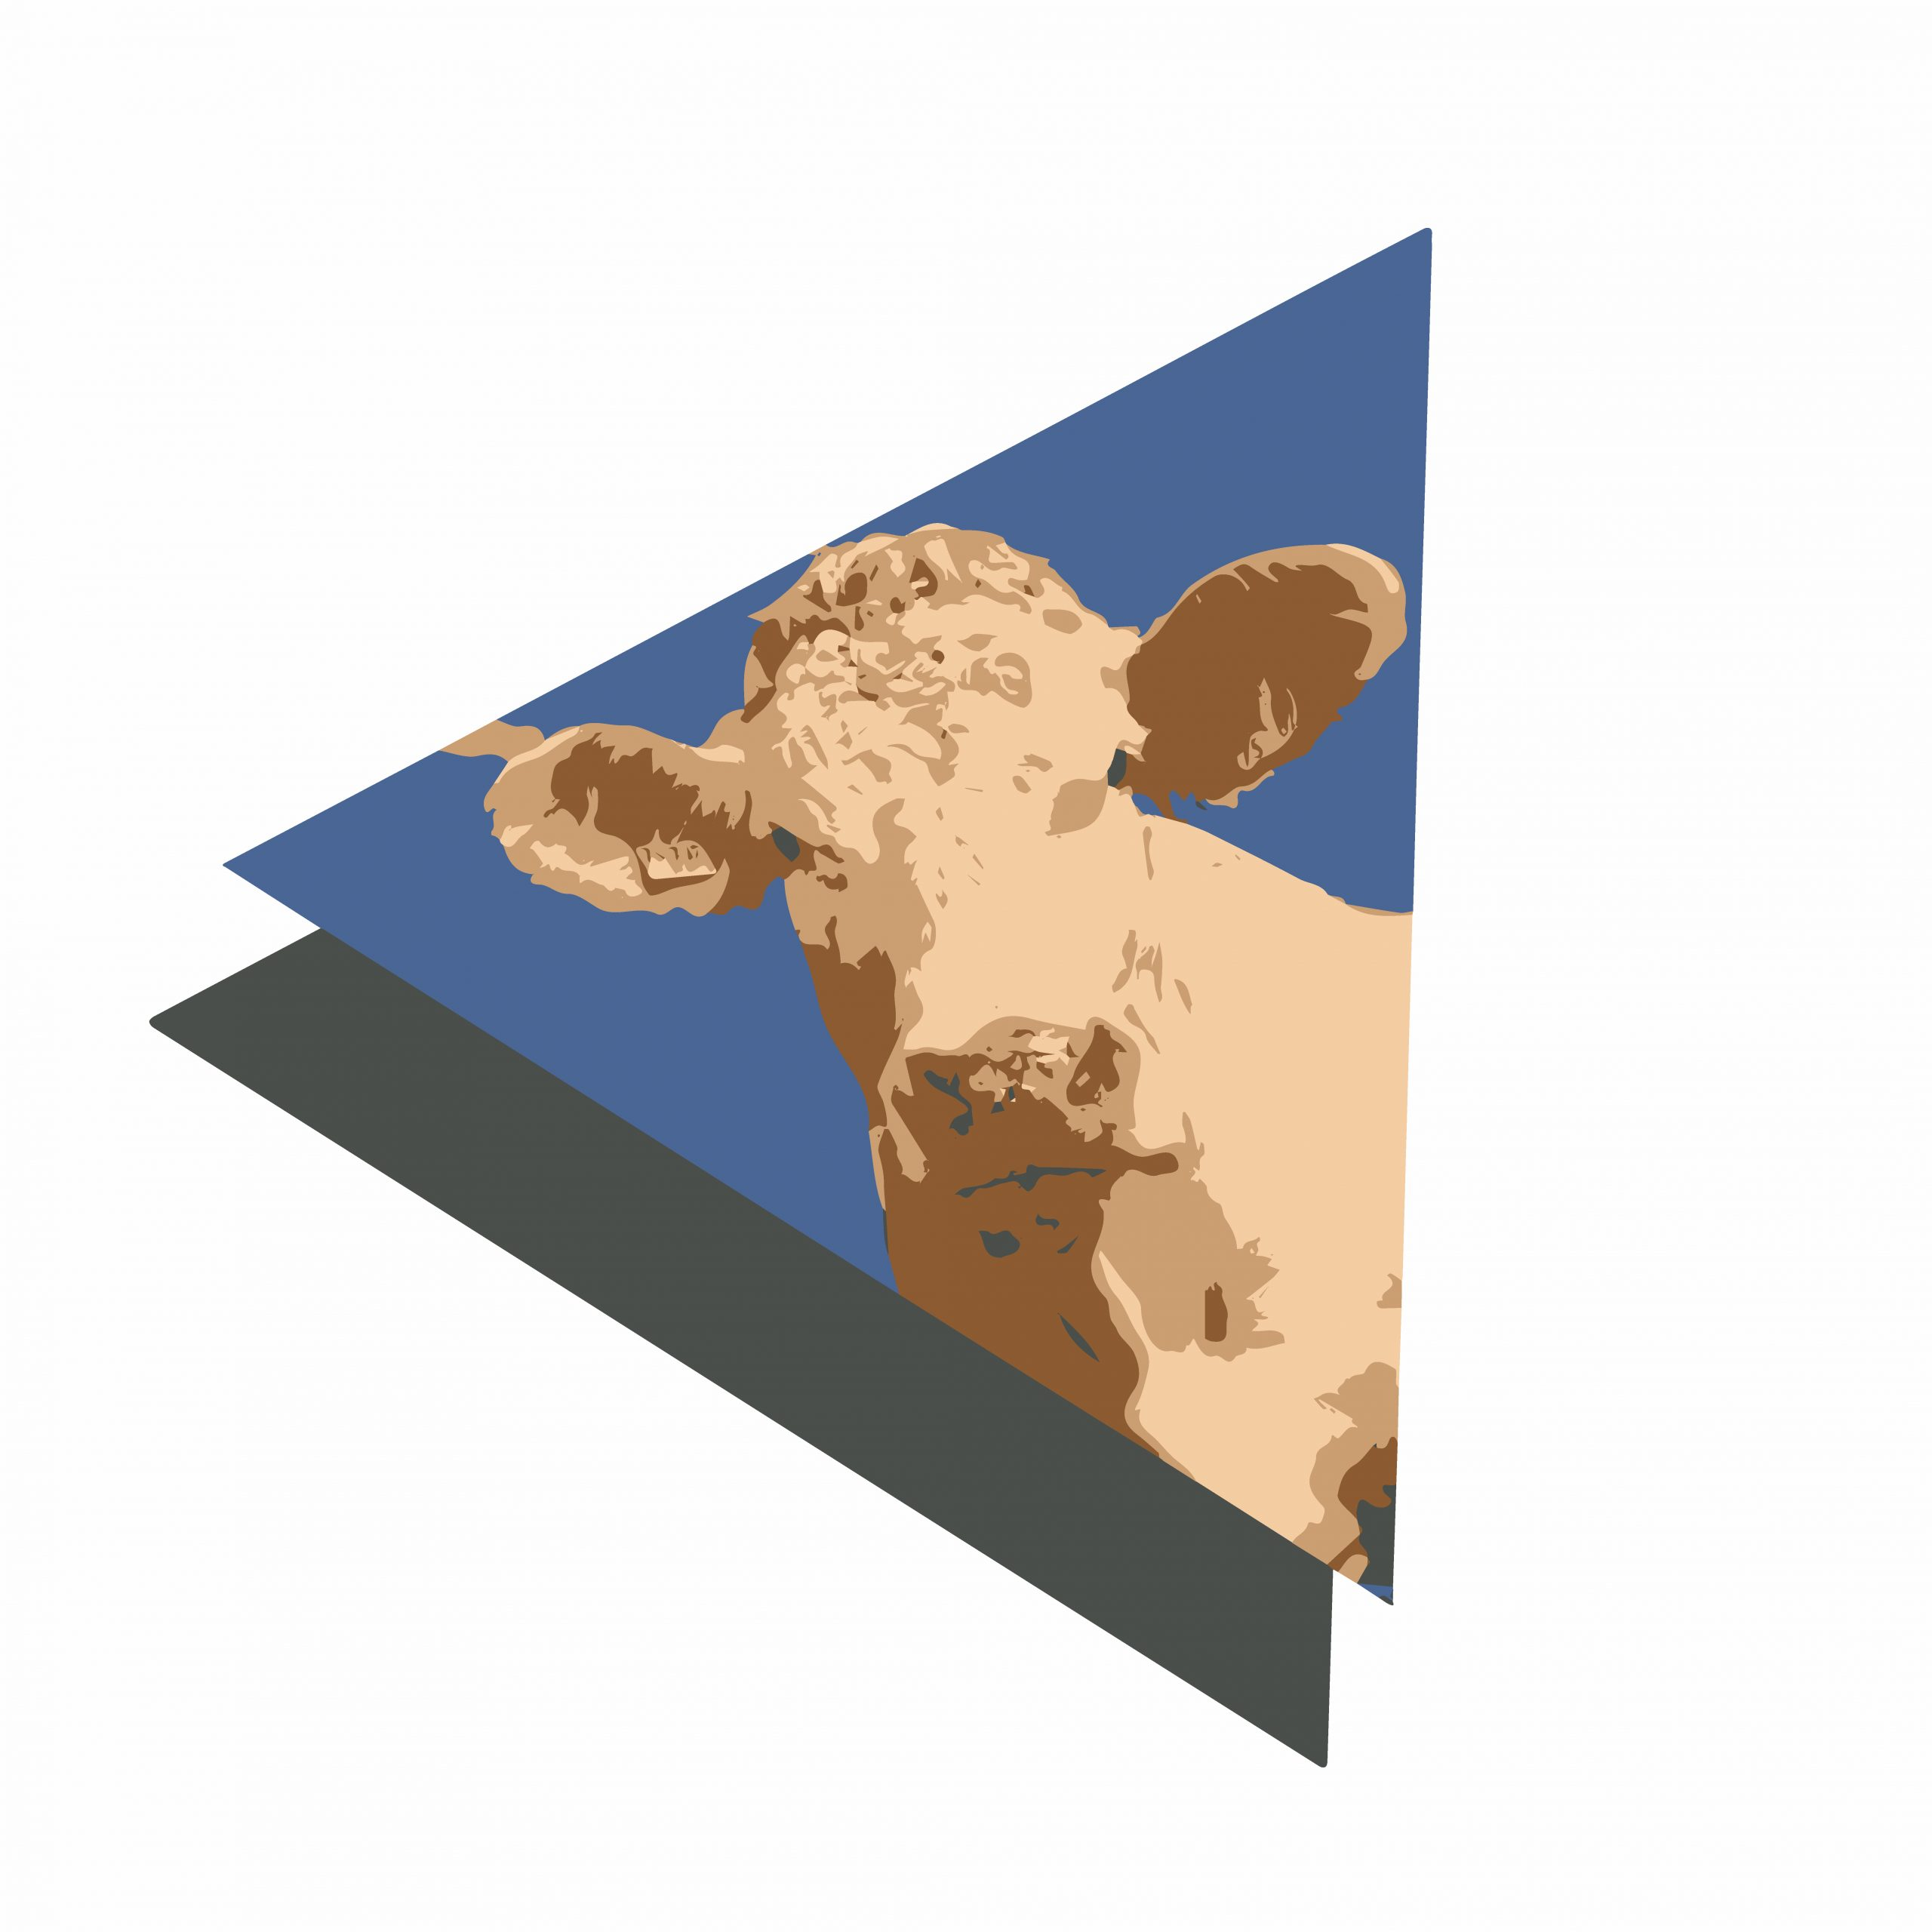 A cow illustration in a triangular design